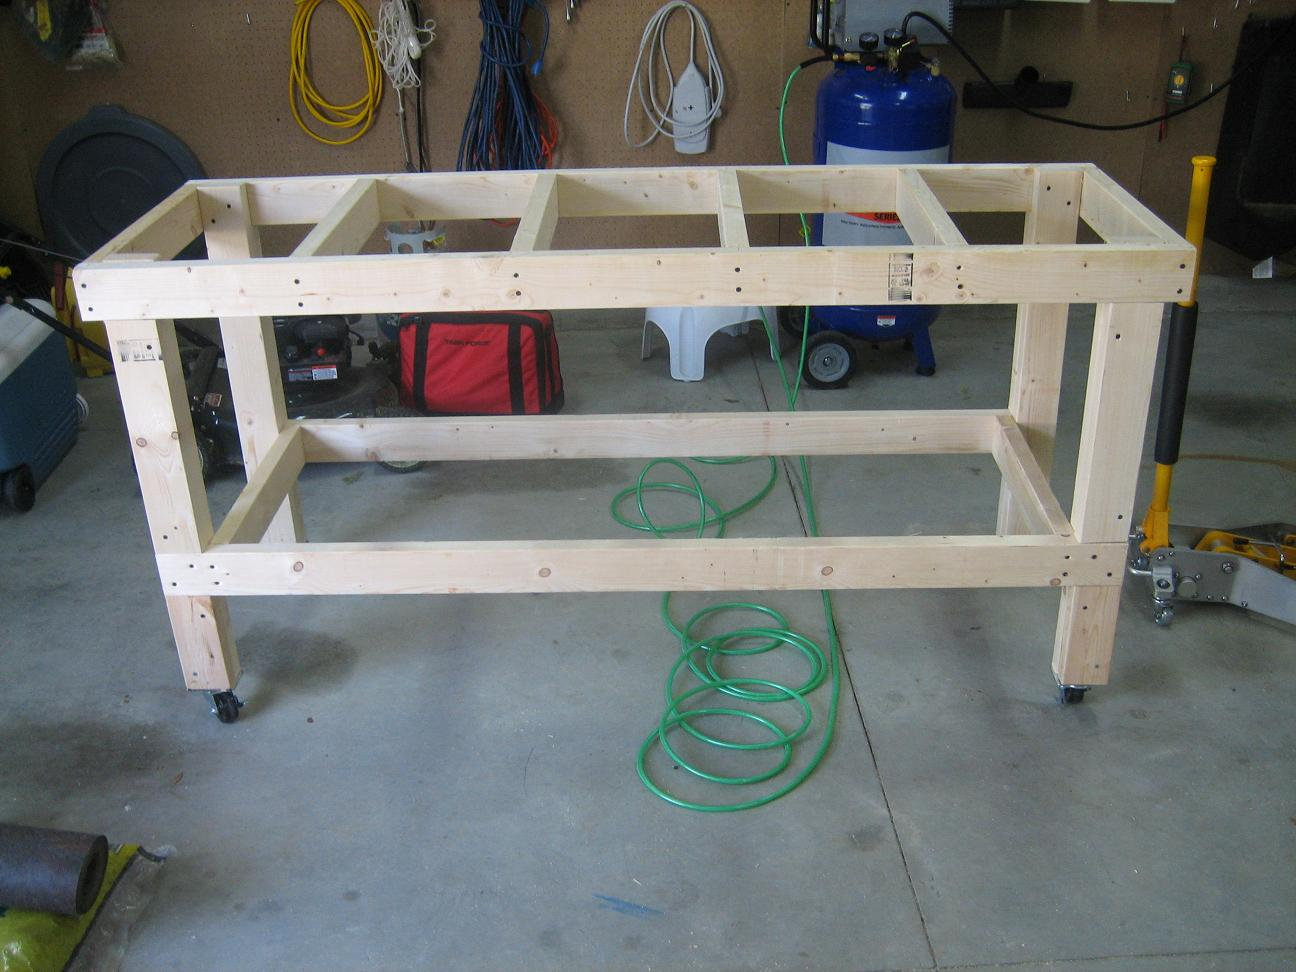 workbench construction runescape